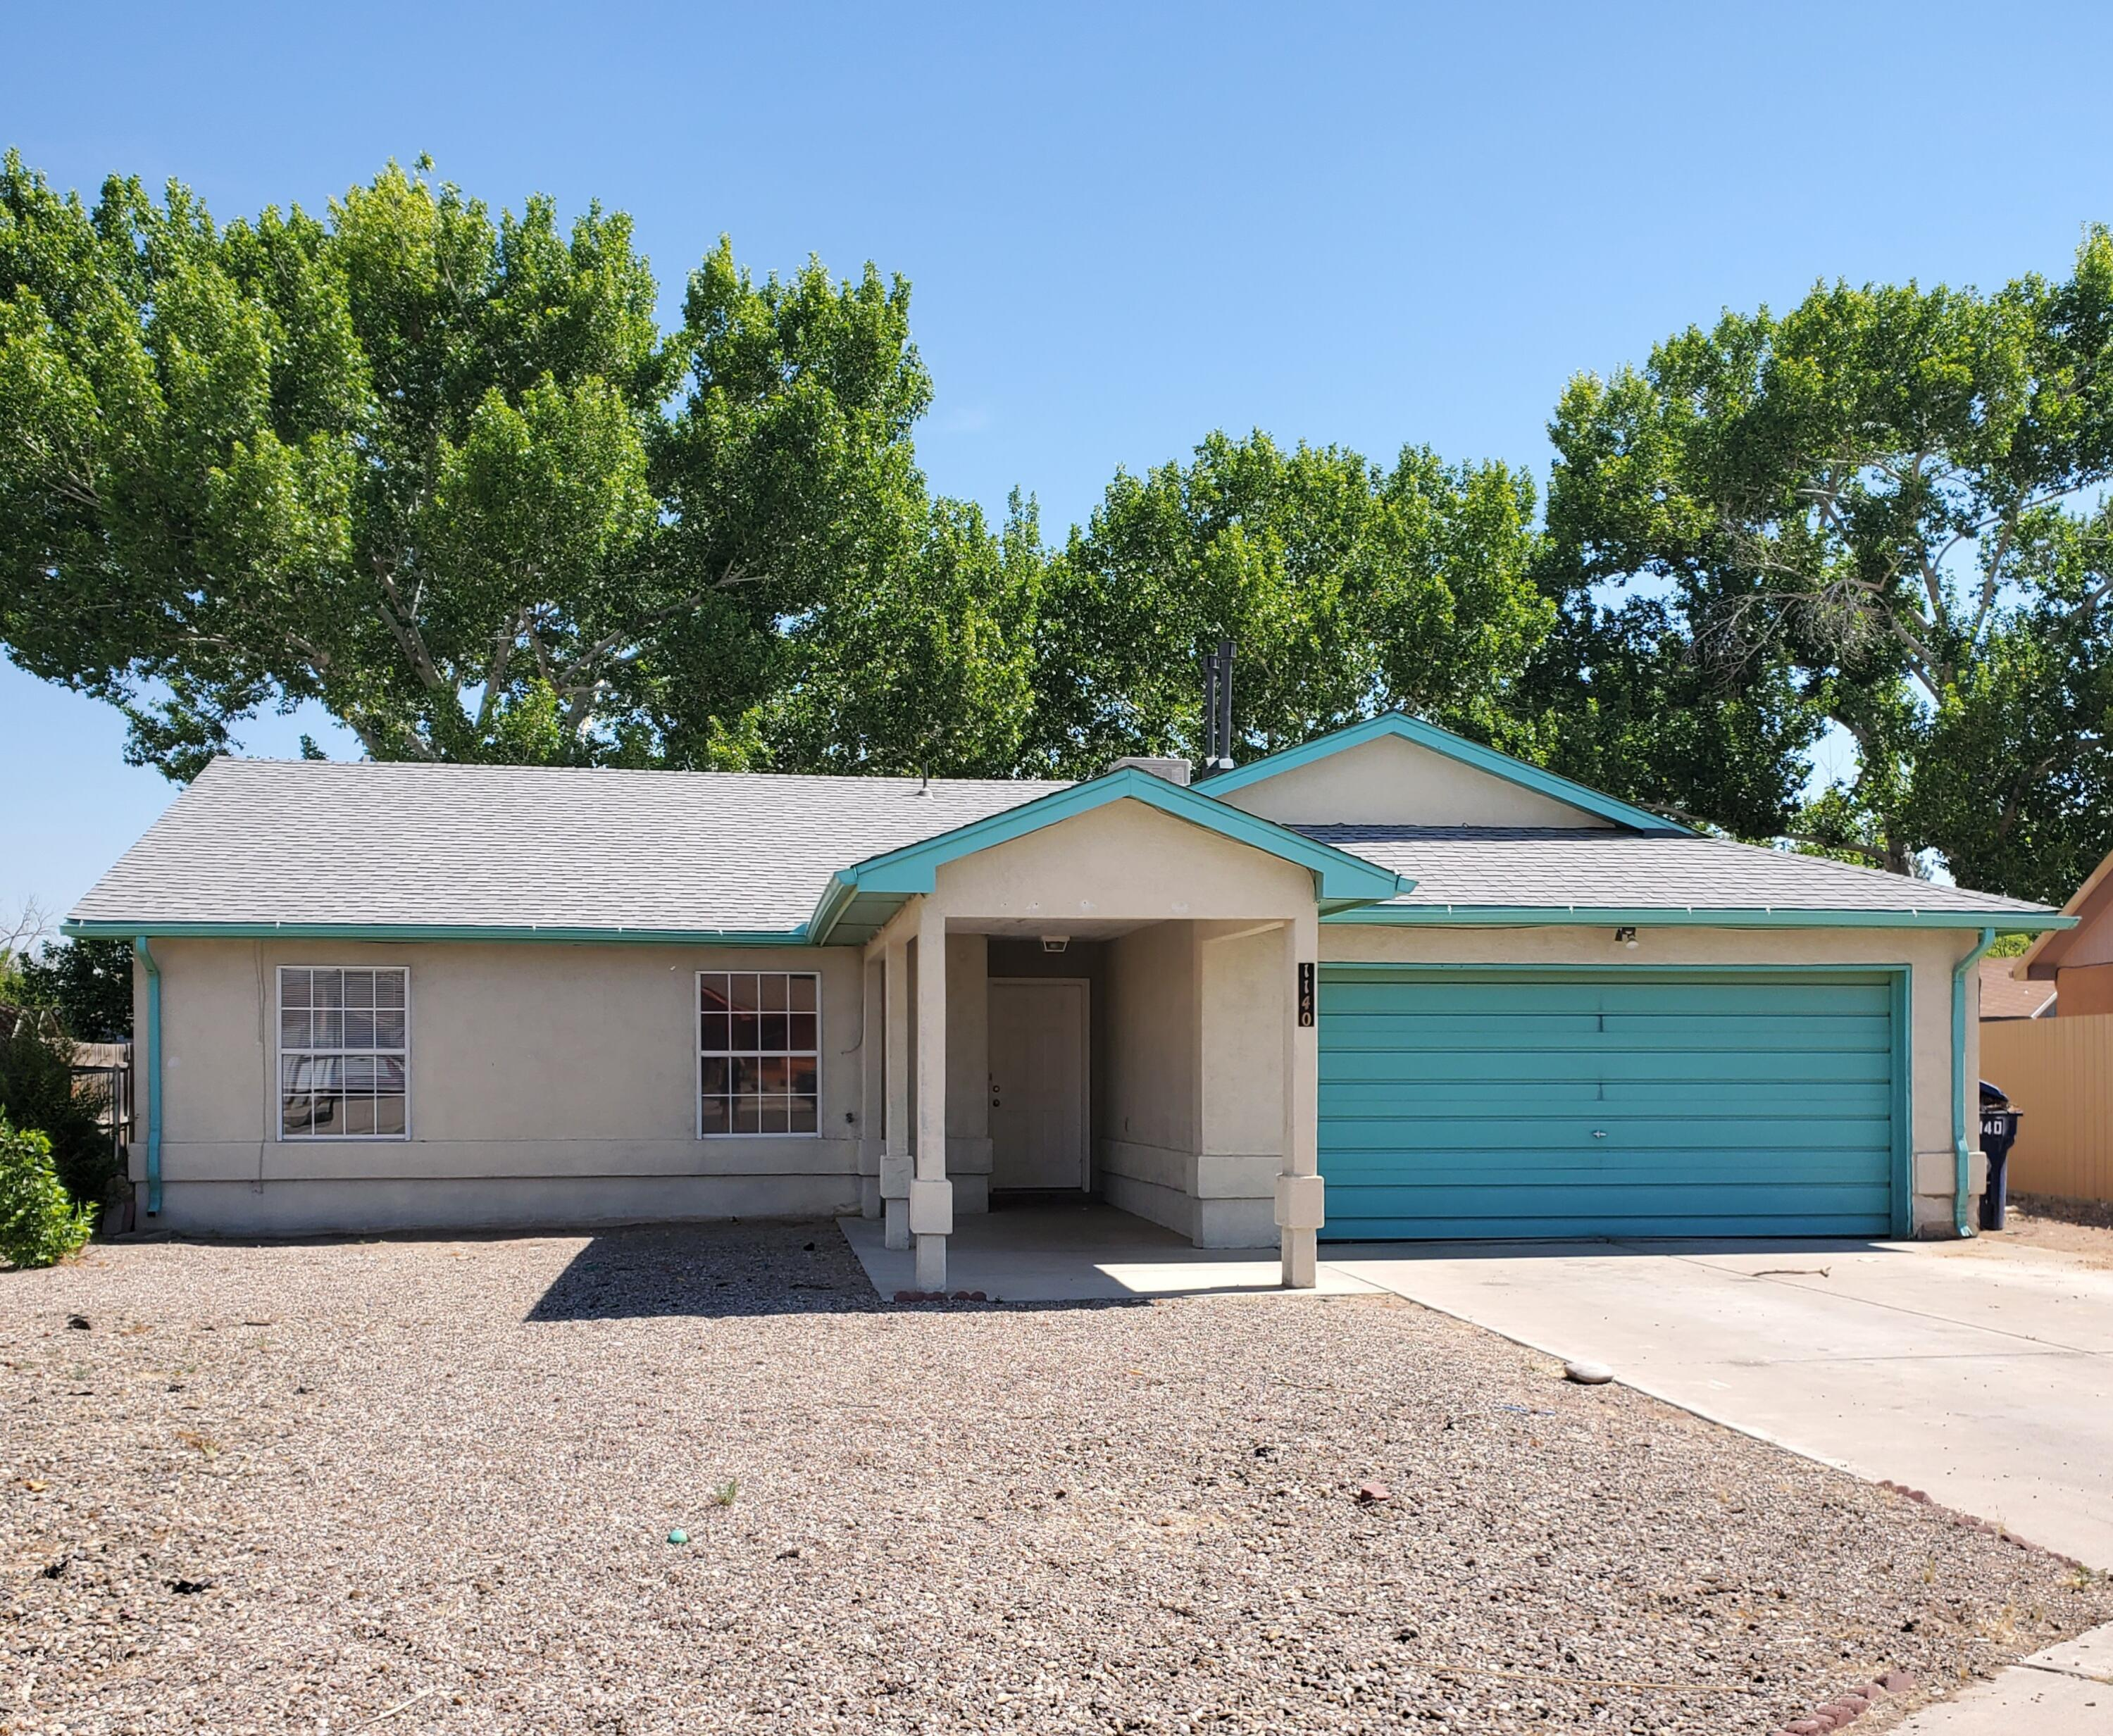 Great 3 bedroom, 2 bath home in the heart of Los Lunas.  Features include an oversize garage and driveway, backyard access and tile floors throughout.